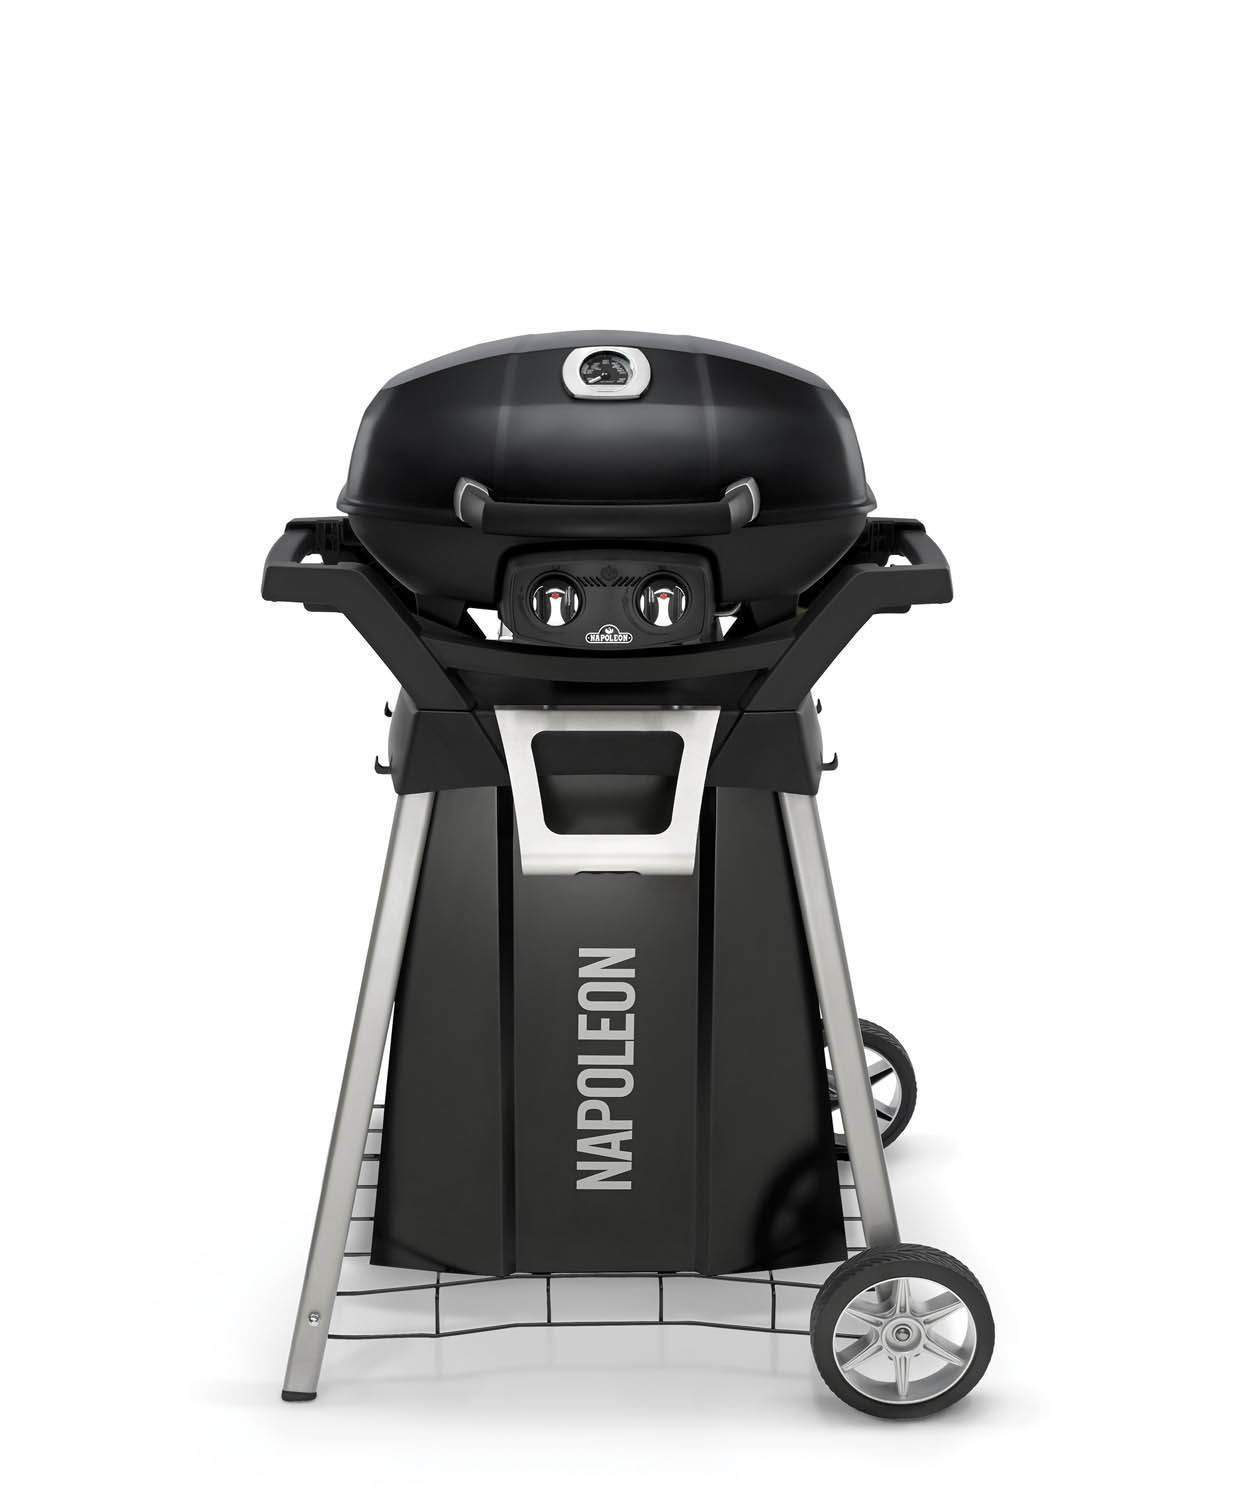 1.	Napoleon TravelQ Pro Portable Gas Grill With Cart And Side Shelf Kit